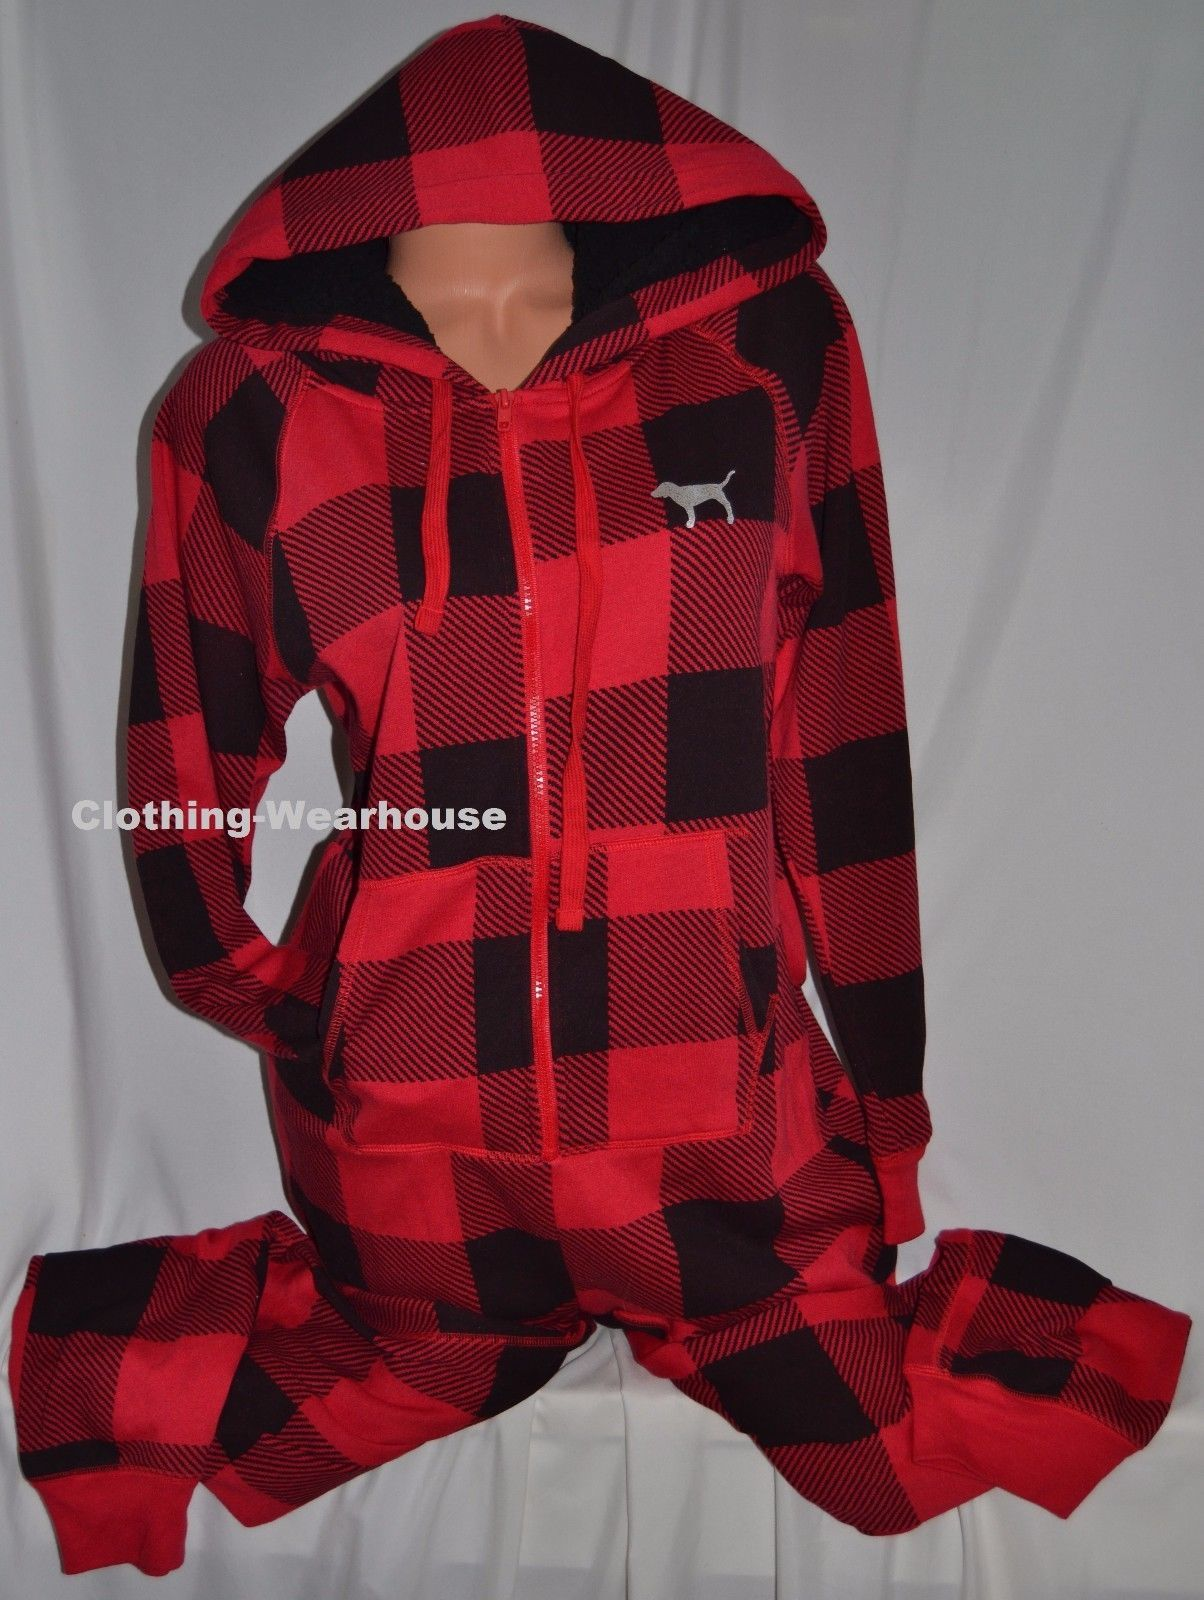 49103635a5 57. 57. Previous. Victoria s Secret PINK Red Black Plaid Sherpa Hooded Long  Jane Pajama Suit S. Victoria s ...